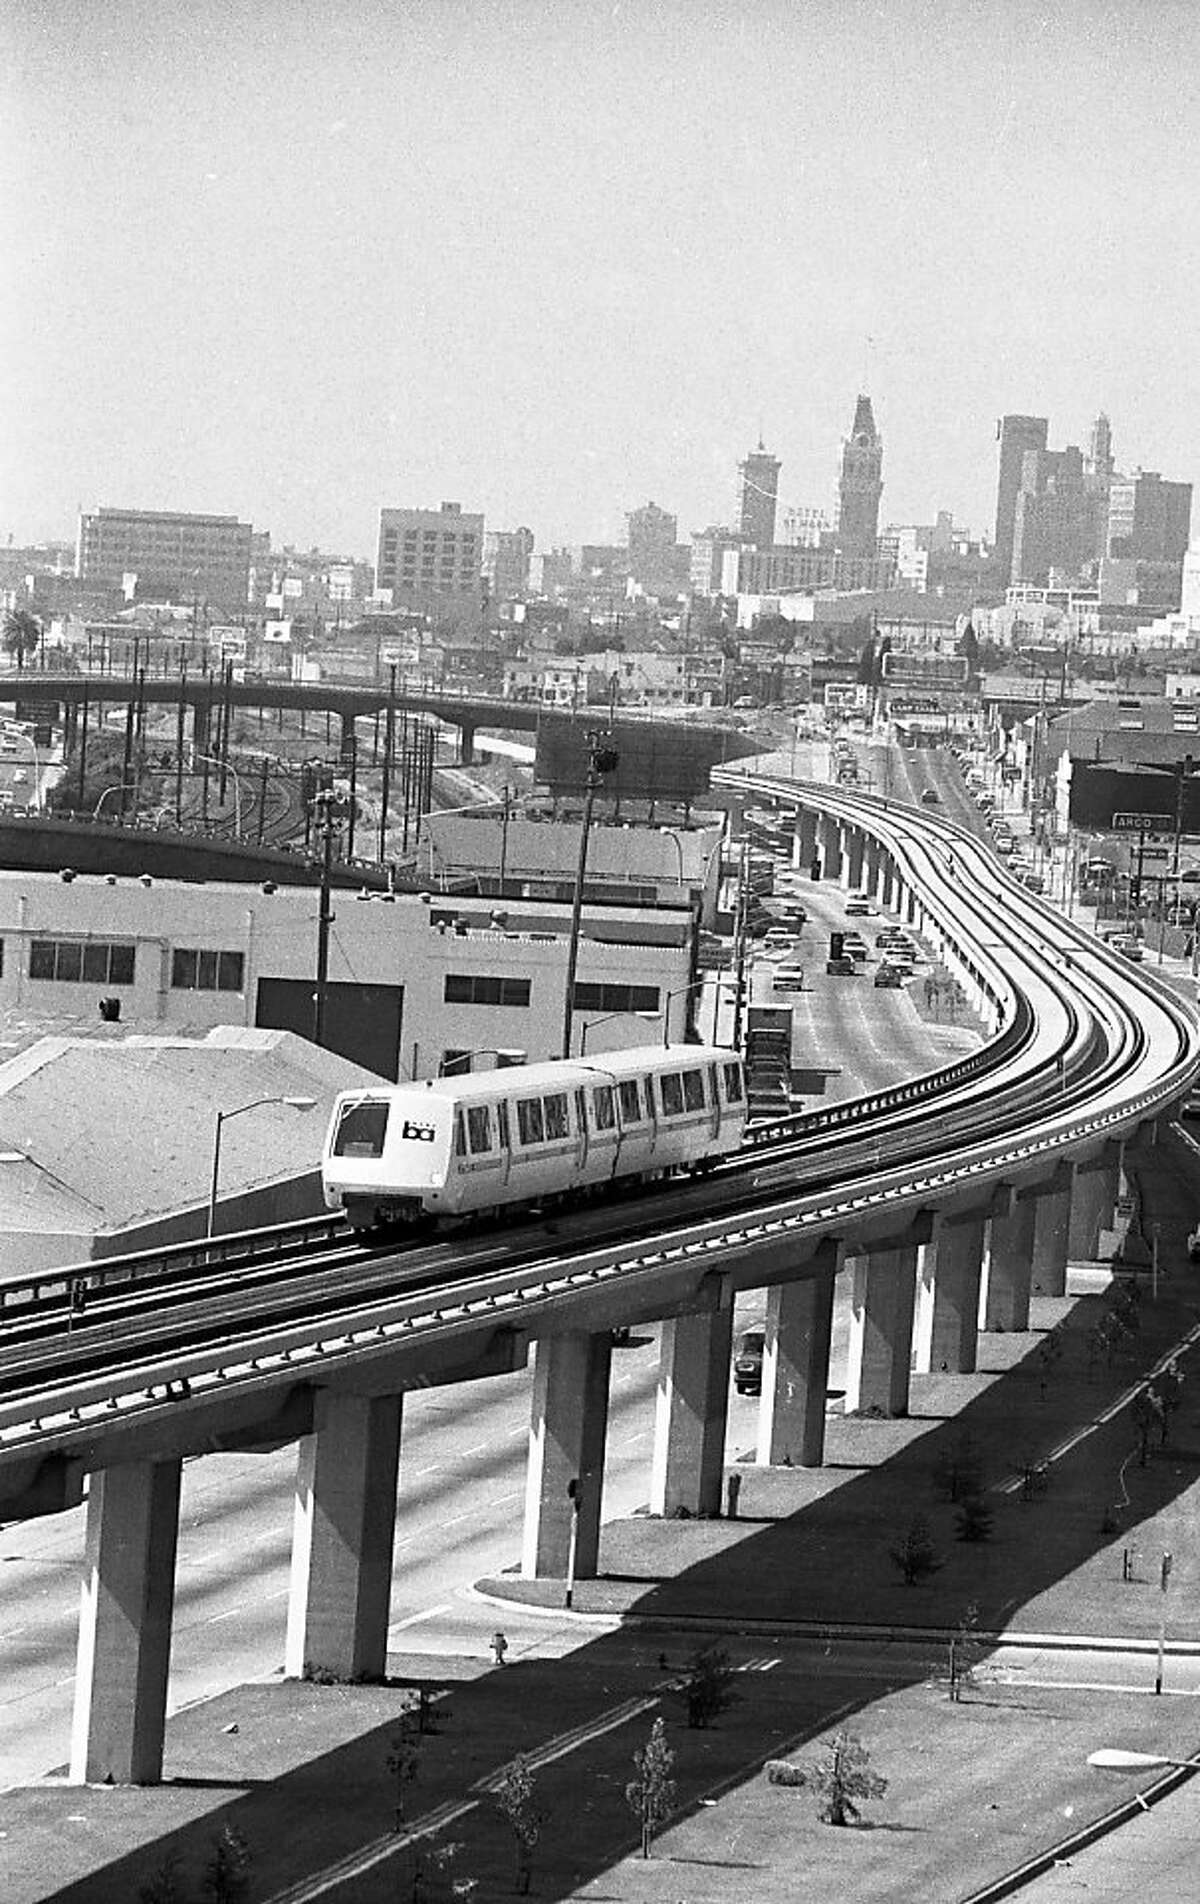 A BART train makes its way from downtown Oakland, Calif., on Monday, September 11, 1972 on the system's first day. BART, the transit system that covers most of the Bay Area is 40-years-old this year.